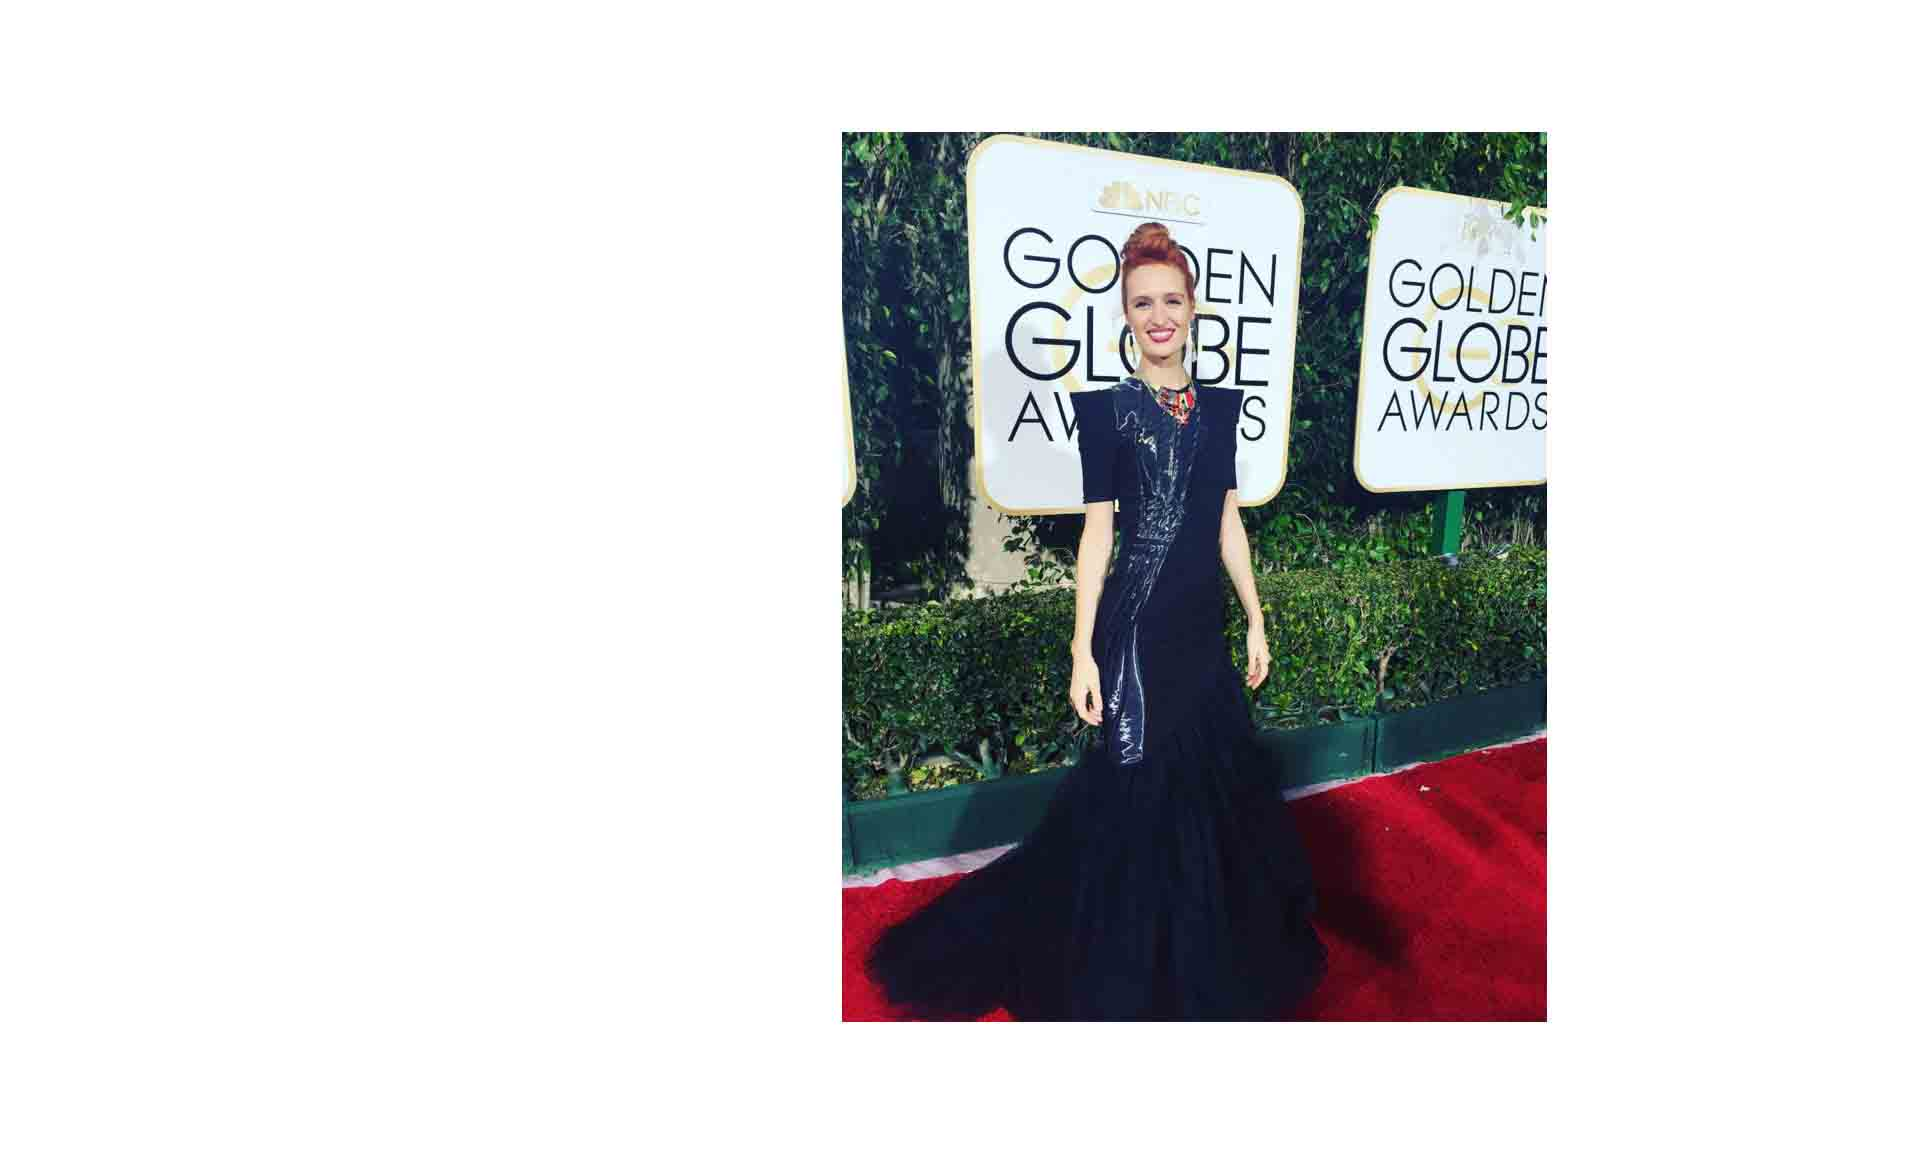 Breeda Wool aux Golden Globes